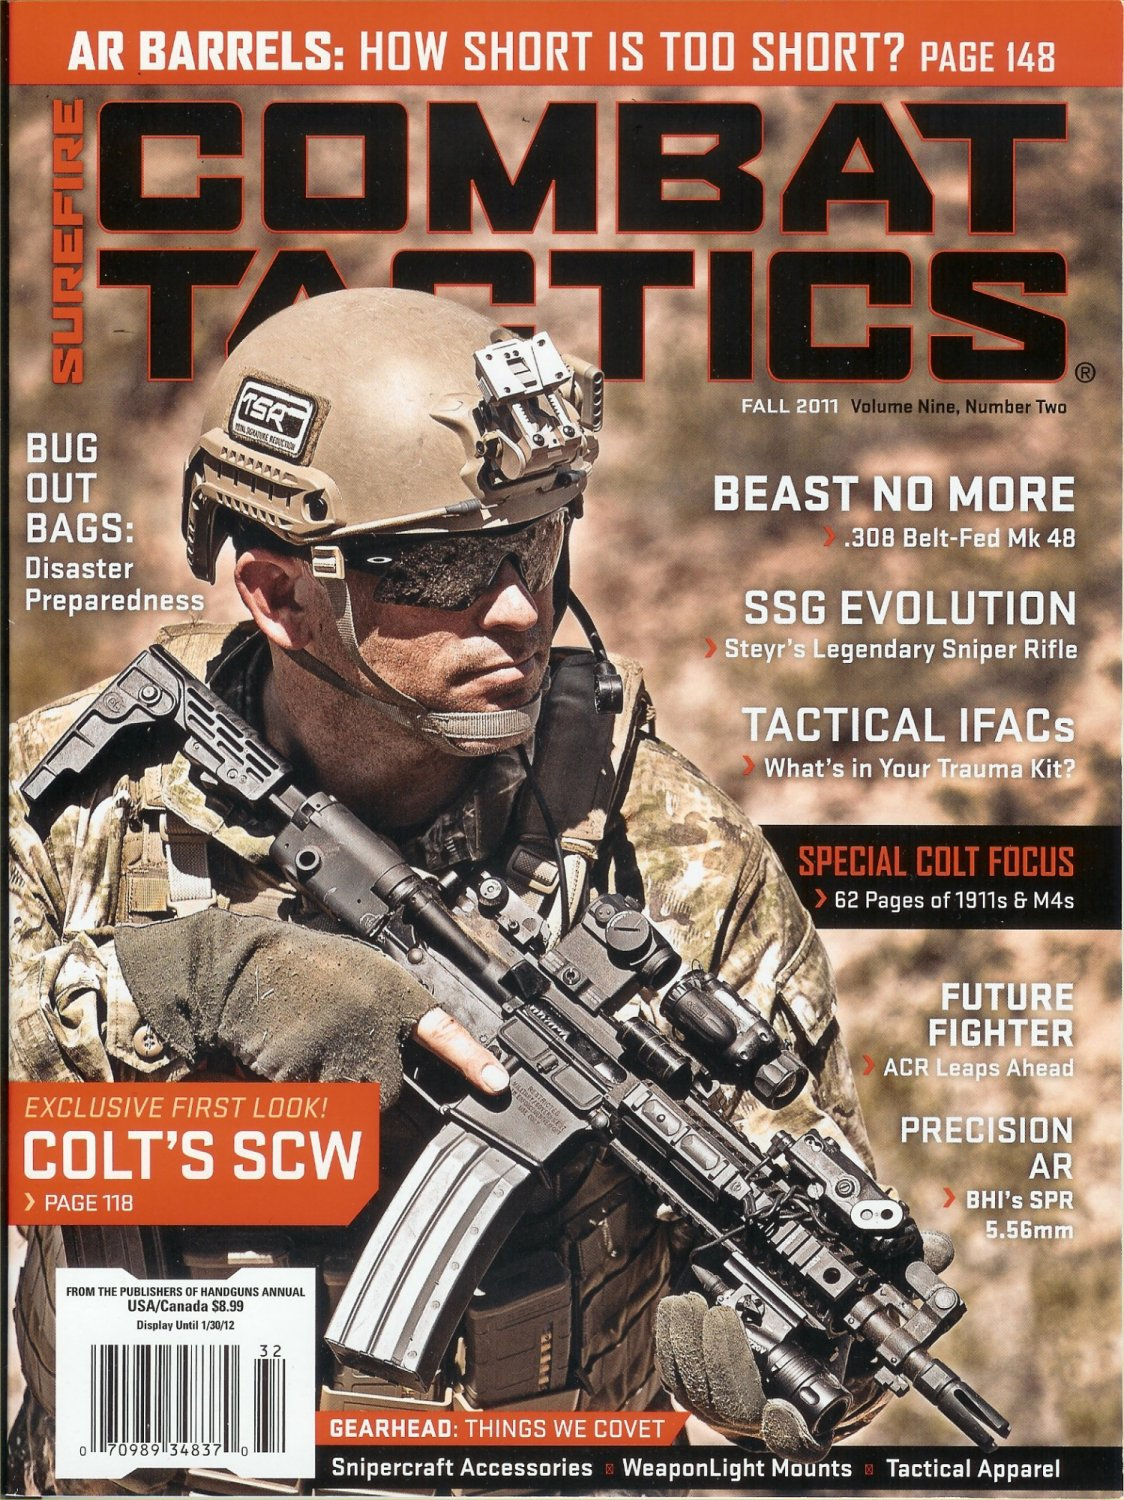 "Orion Design Group (ODG) ODTDM-2 Arid-Environment/Multi-Environment/Multi-Terrain/Multispectral Military Combat Camo (Camouflage) Pattern/""Individual Signature Management"" Technology Makes Cover of SureFire ""Combat Tactics"" Magazine Fall 2011 Issue (Photo!)"